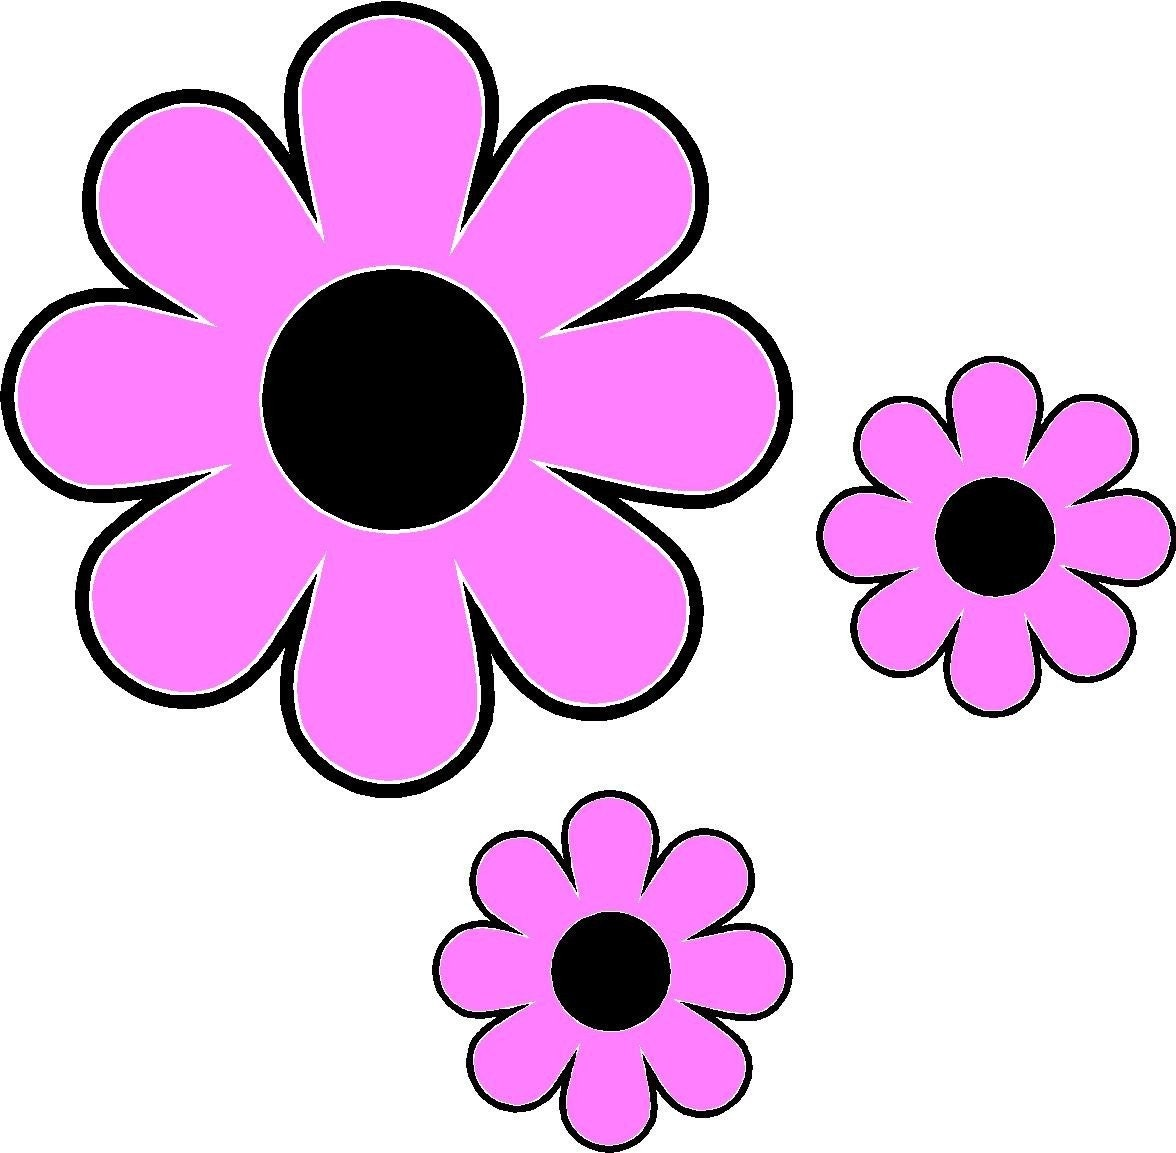 Hippy Flower II Vinyl Decal Sticker Adhesive Graphic for your